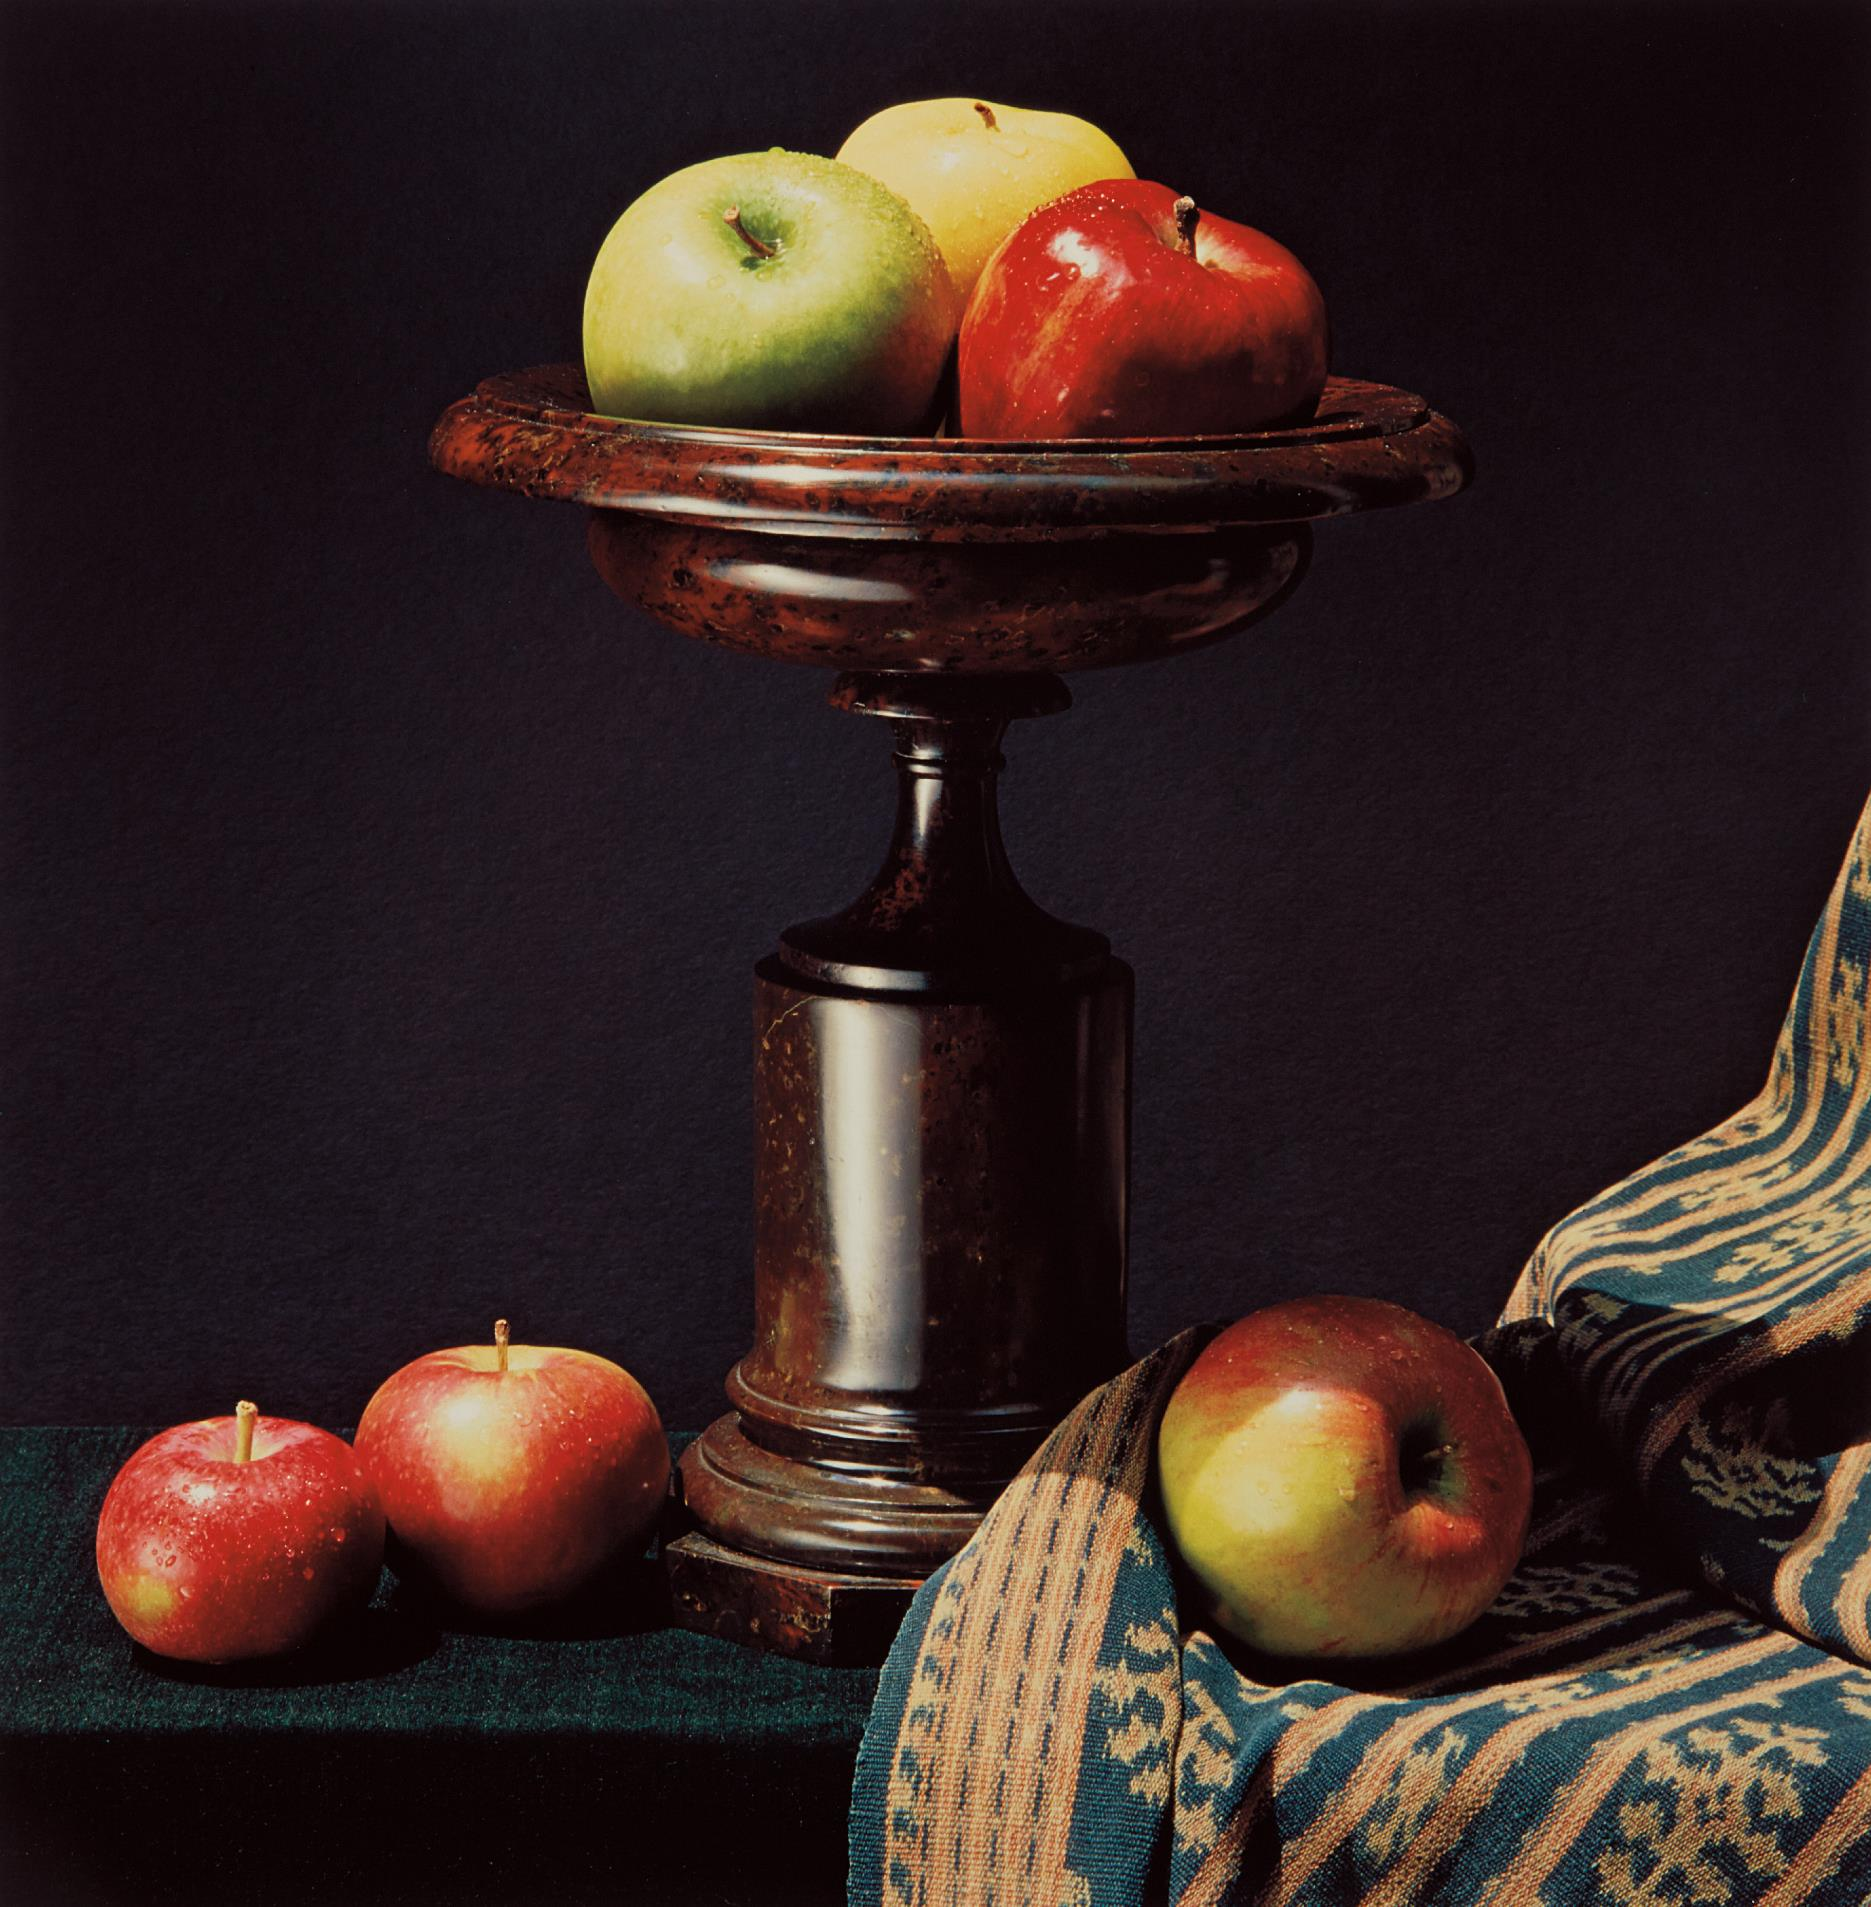 Robert Mapplethorpe-Apples and Urn-1987